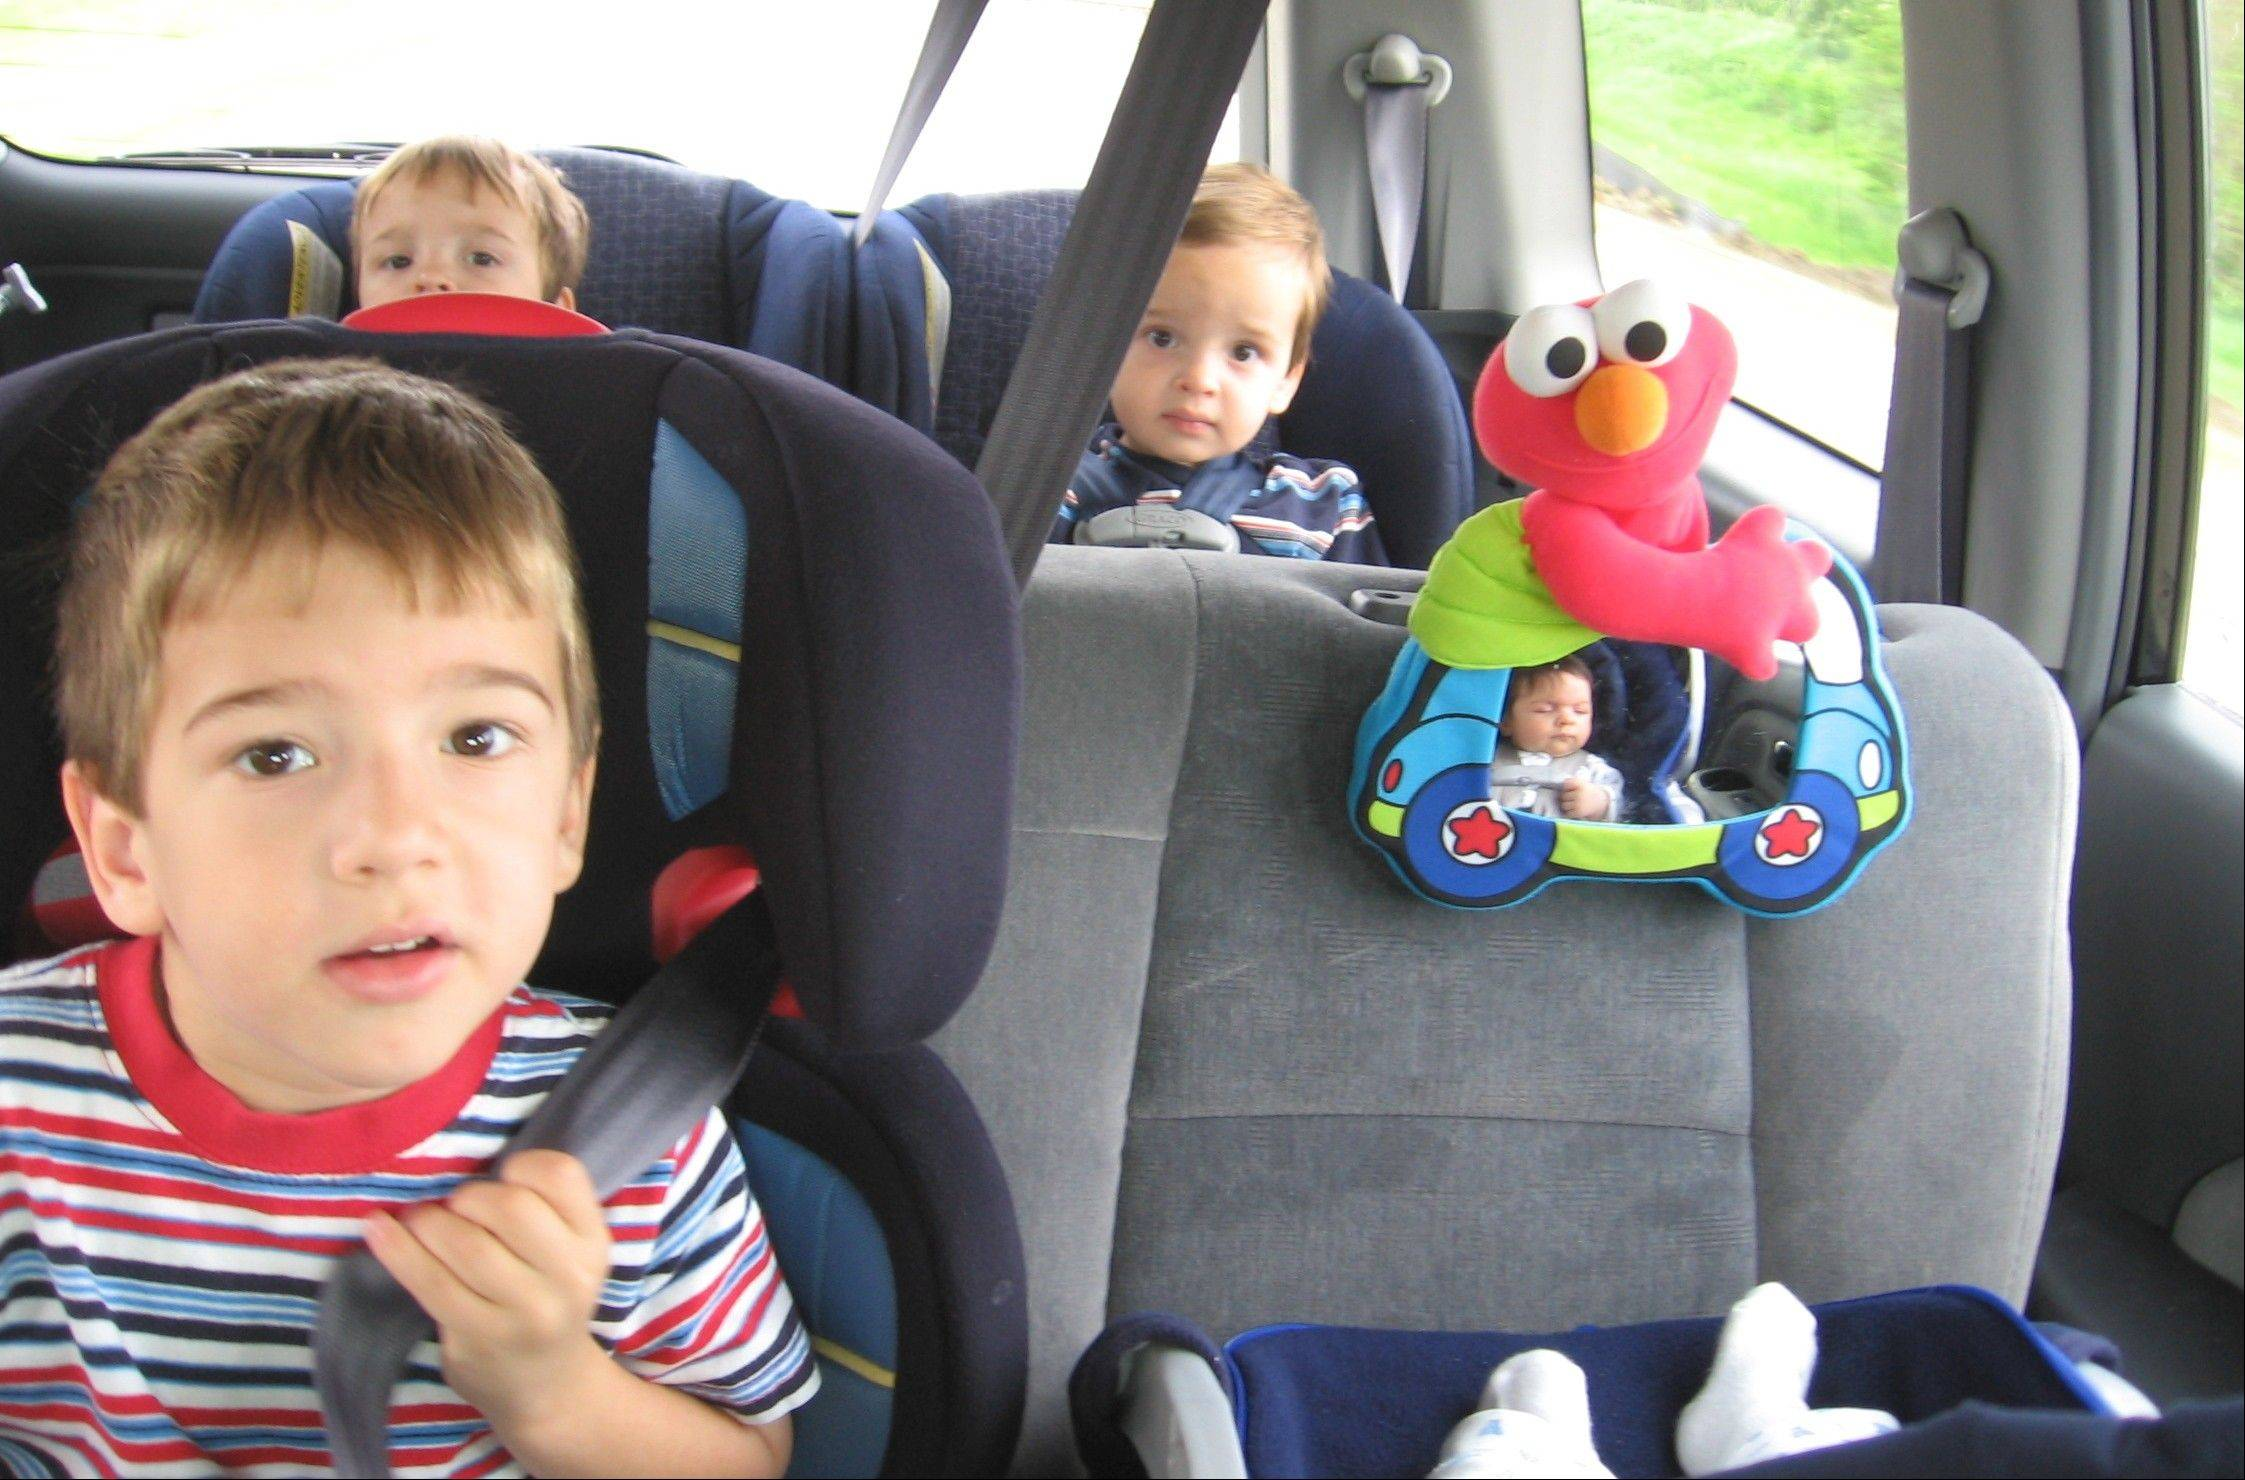 The Flais kids, including 2-year-old twins (rear), a 4-year-old and 2-month-old infant, hit the road in 2006. Family road trips can be